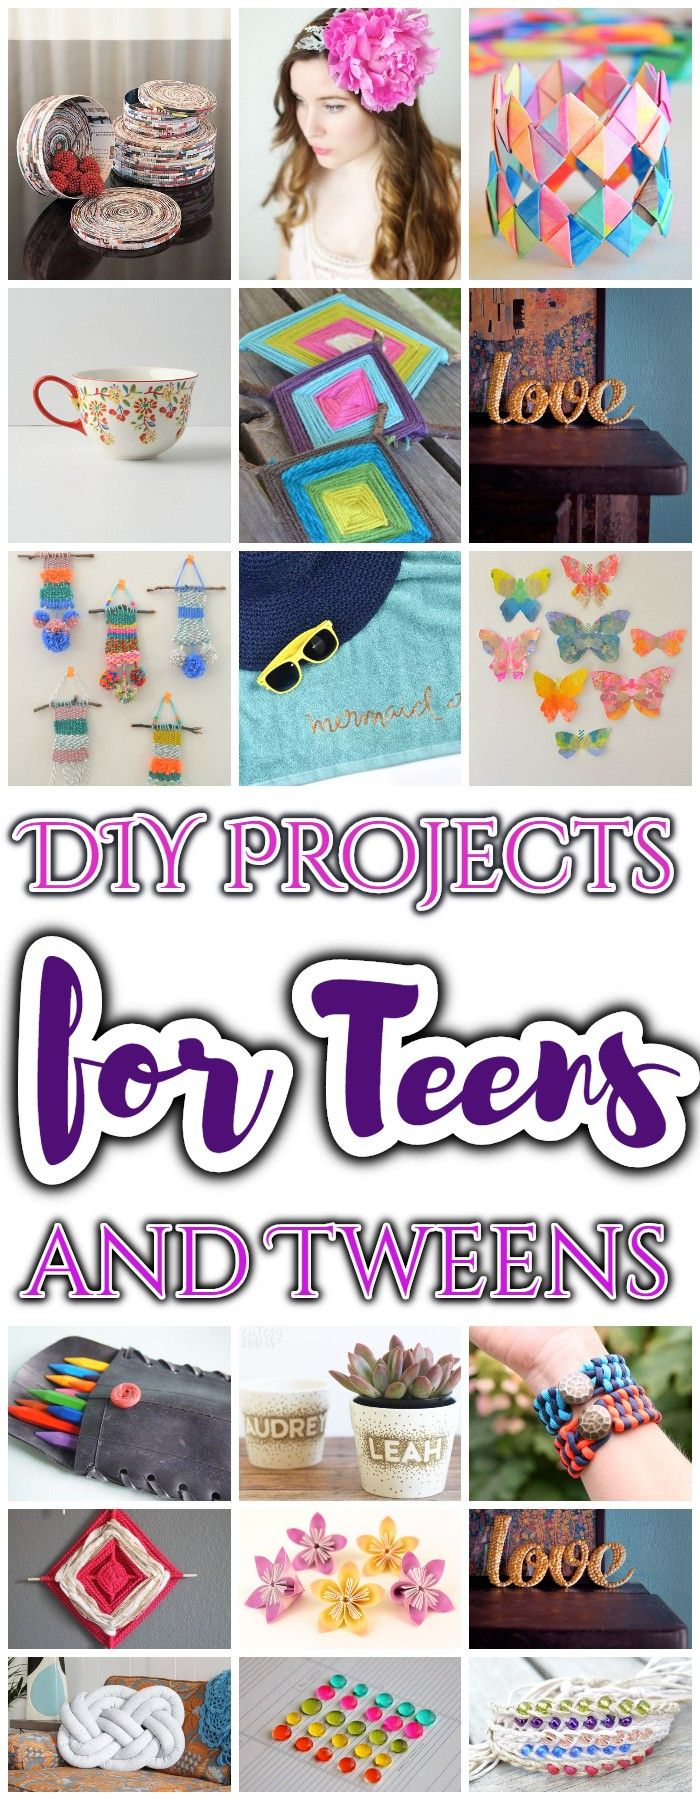 25 Cheap DIY Projects for Teens and Tweens